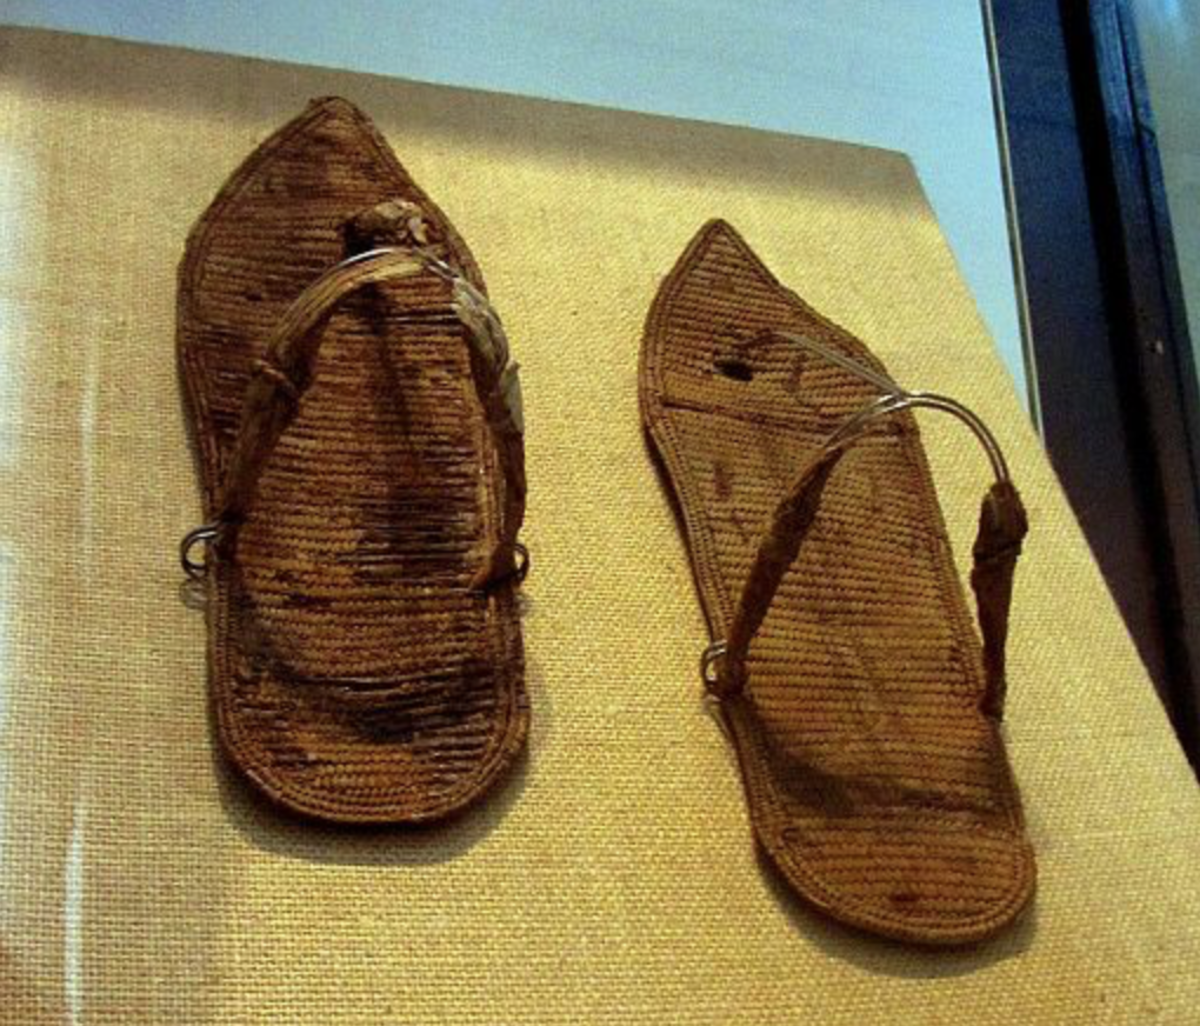 Ancient Egyptian flip flops made of papyrus